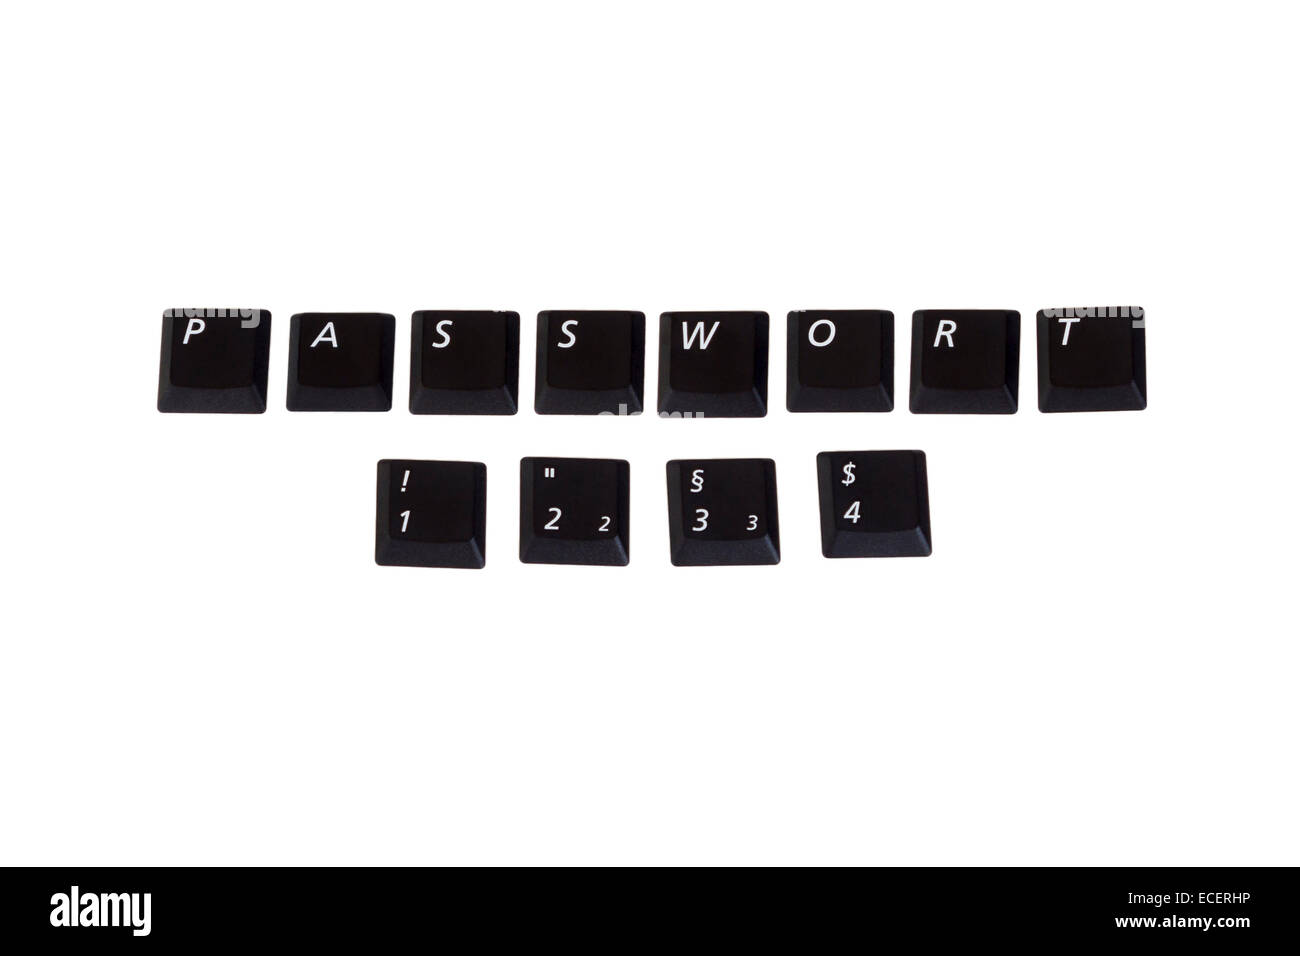 Password 1234 as verry poppular and unsafe password written with single computer keys isolated on white background - Stock Image